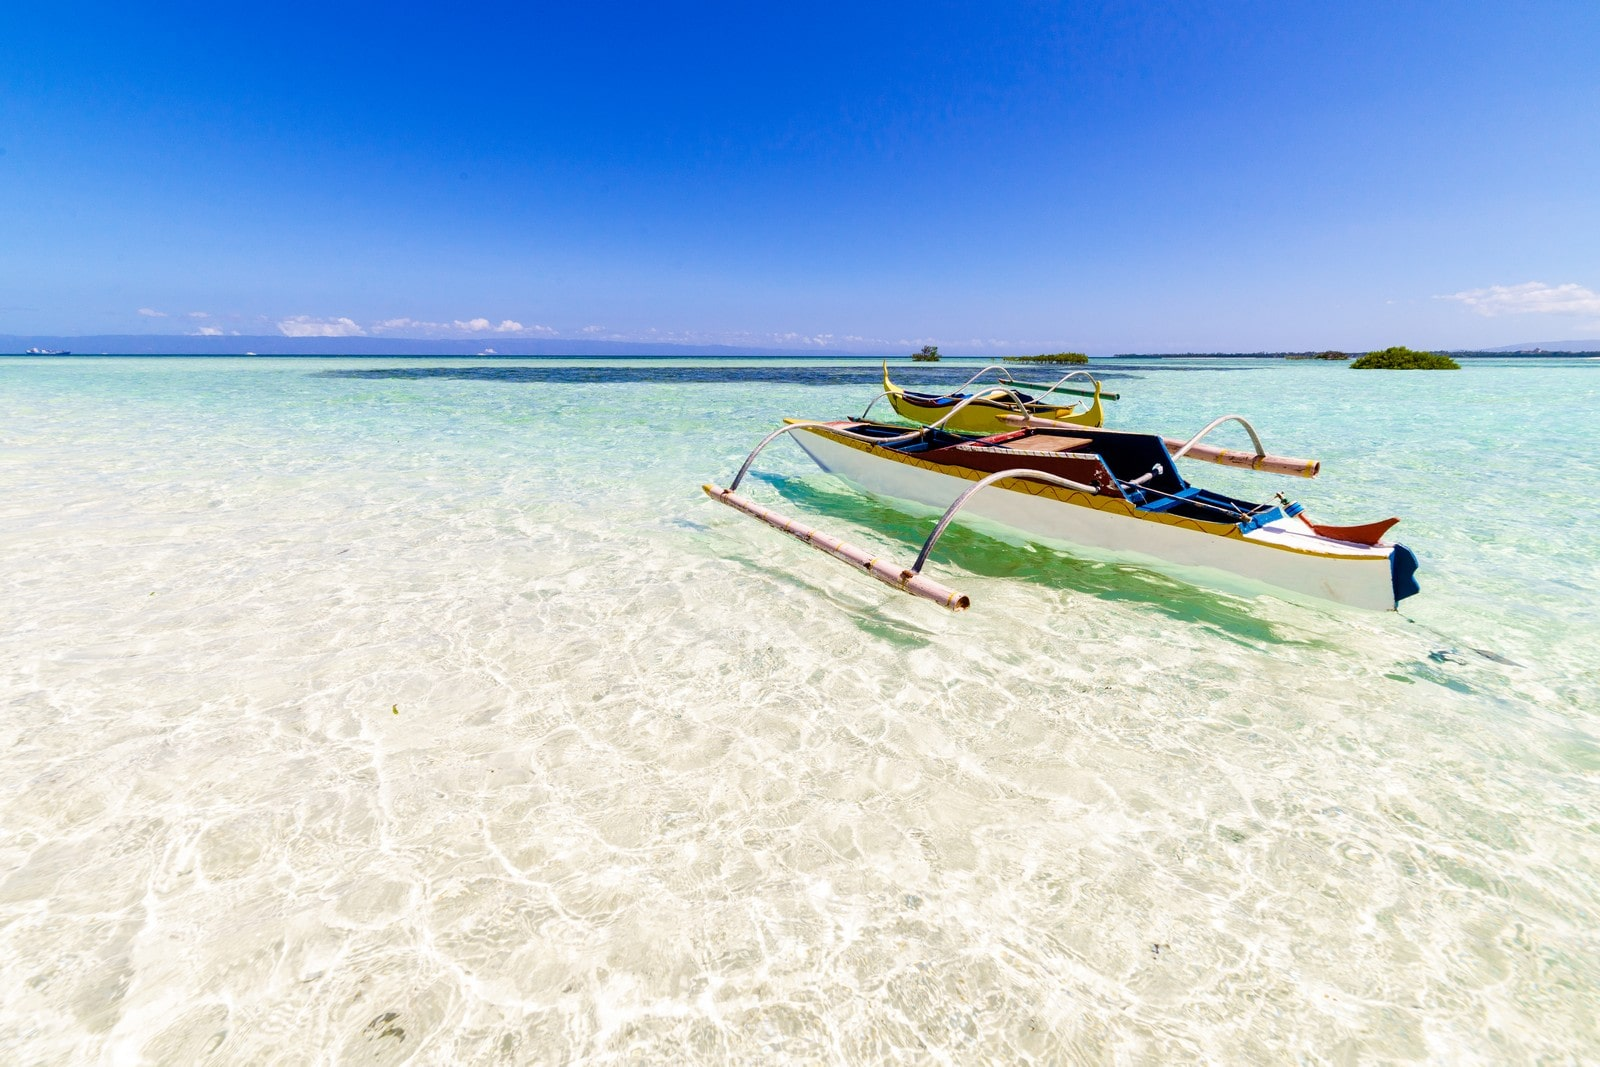 A peak at the clear waters of Virgin Island in Panglao, Bohol